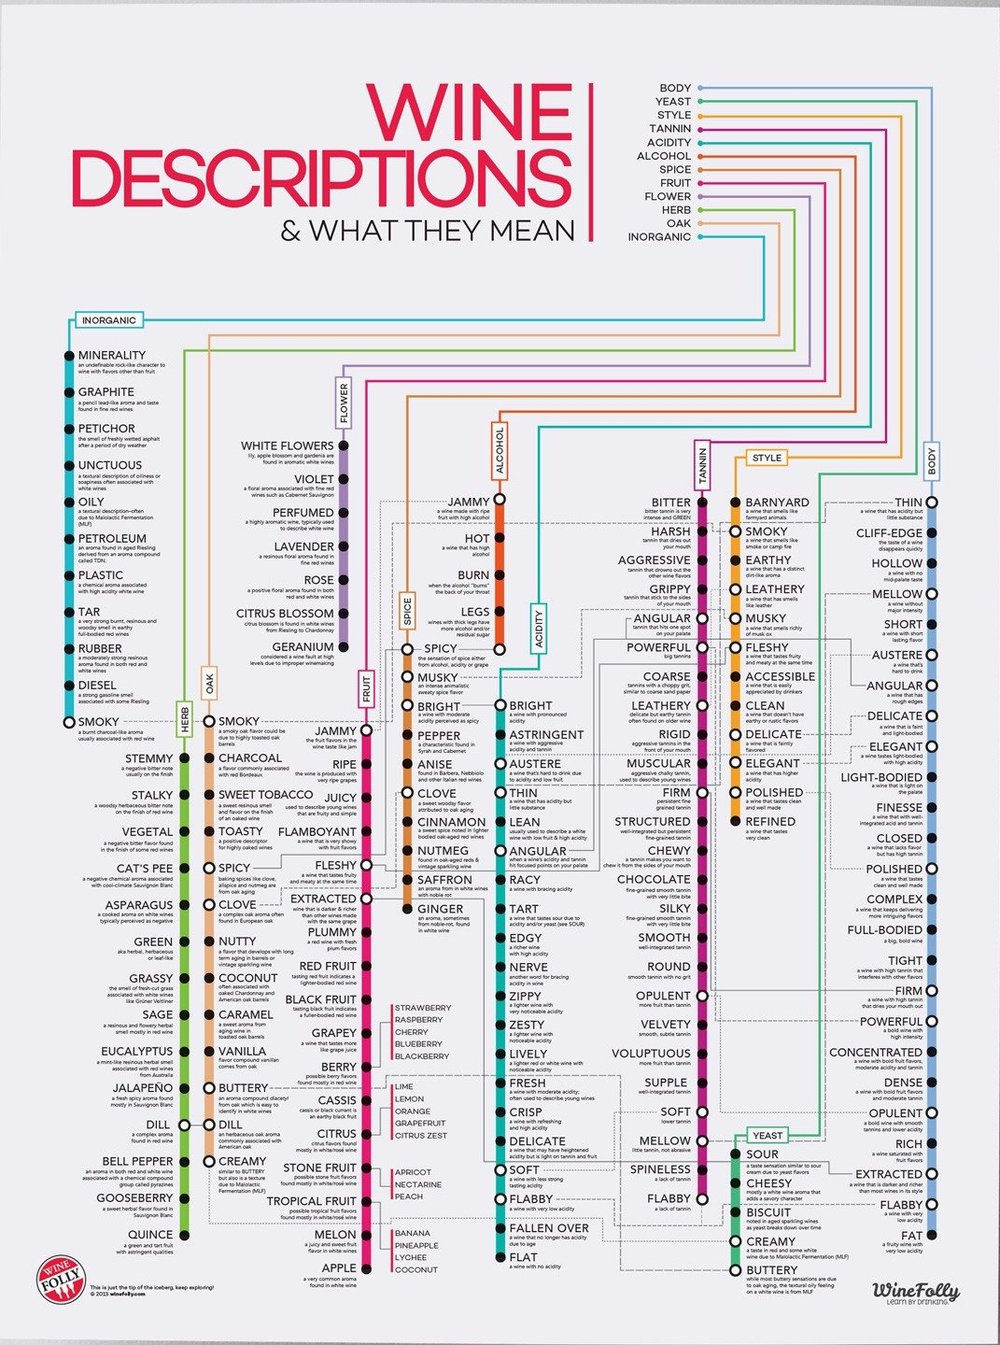 Wine Descriptions & What They Mean